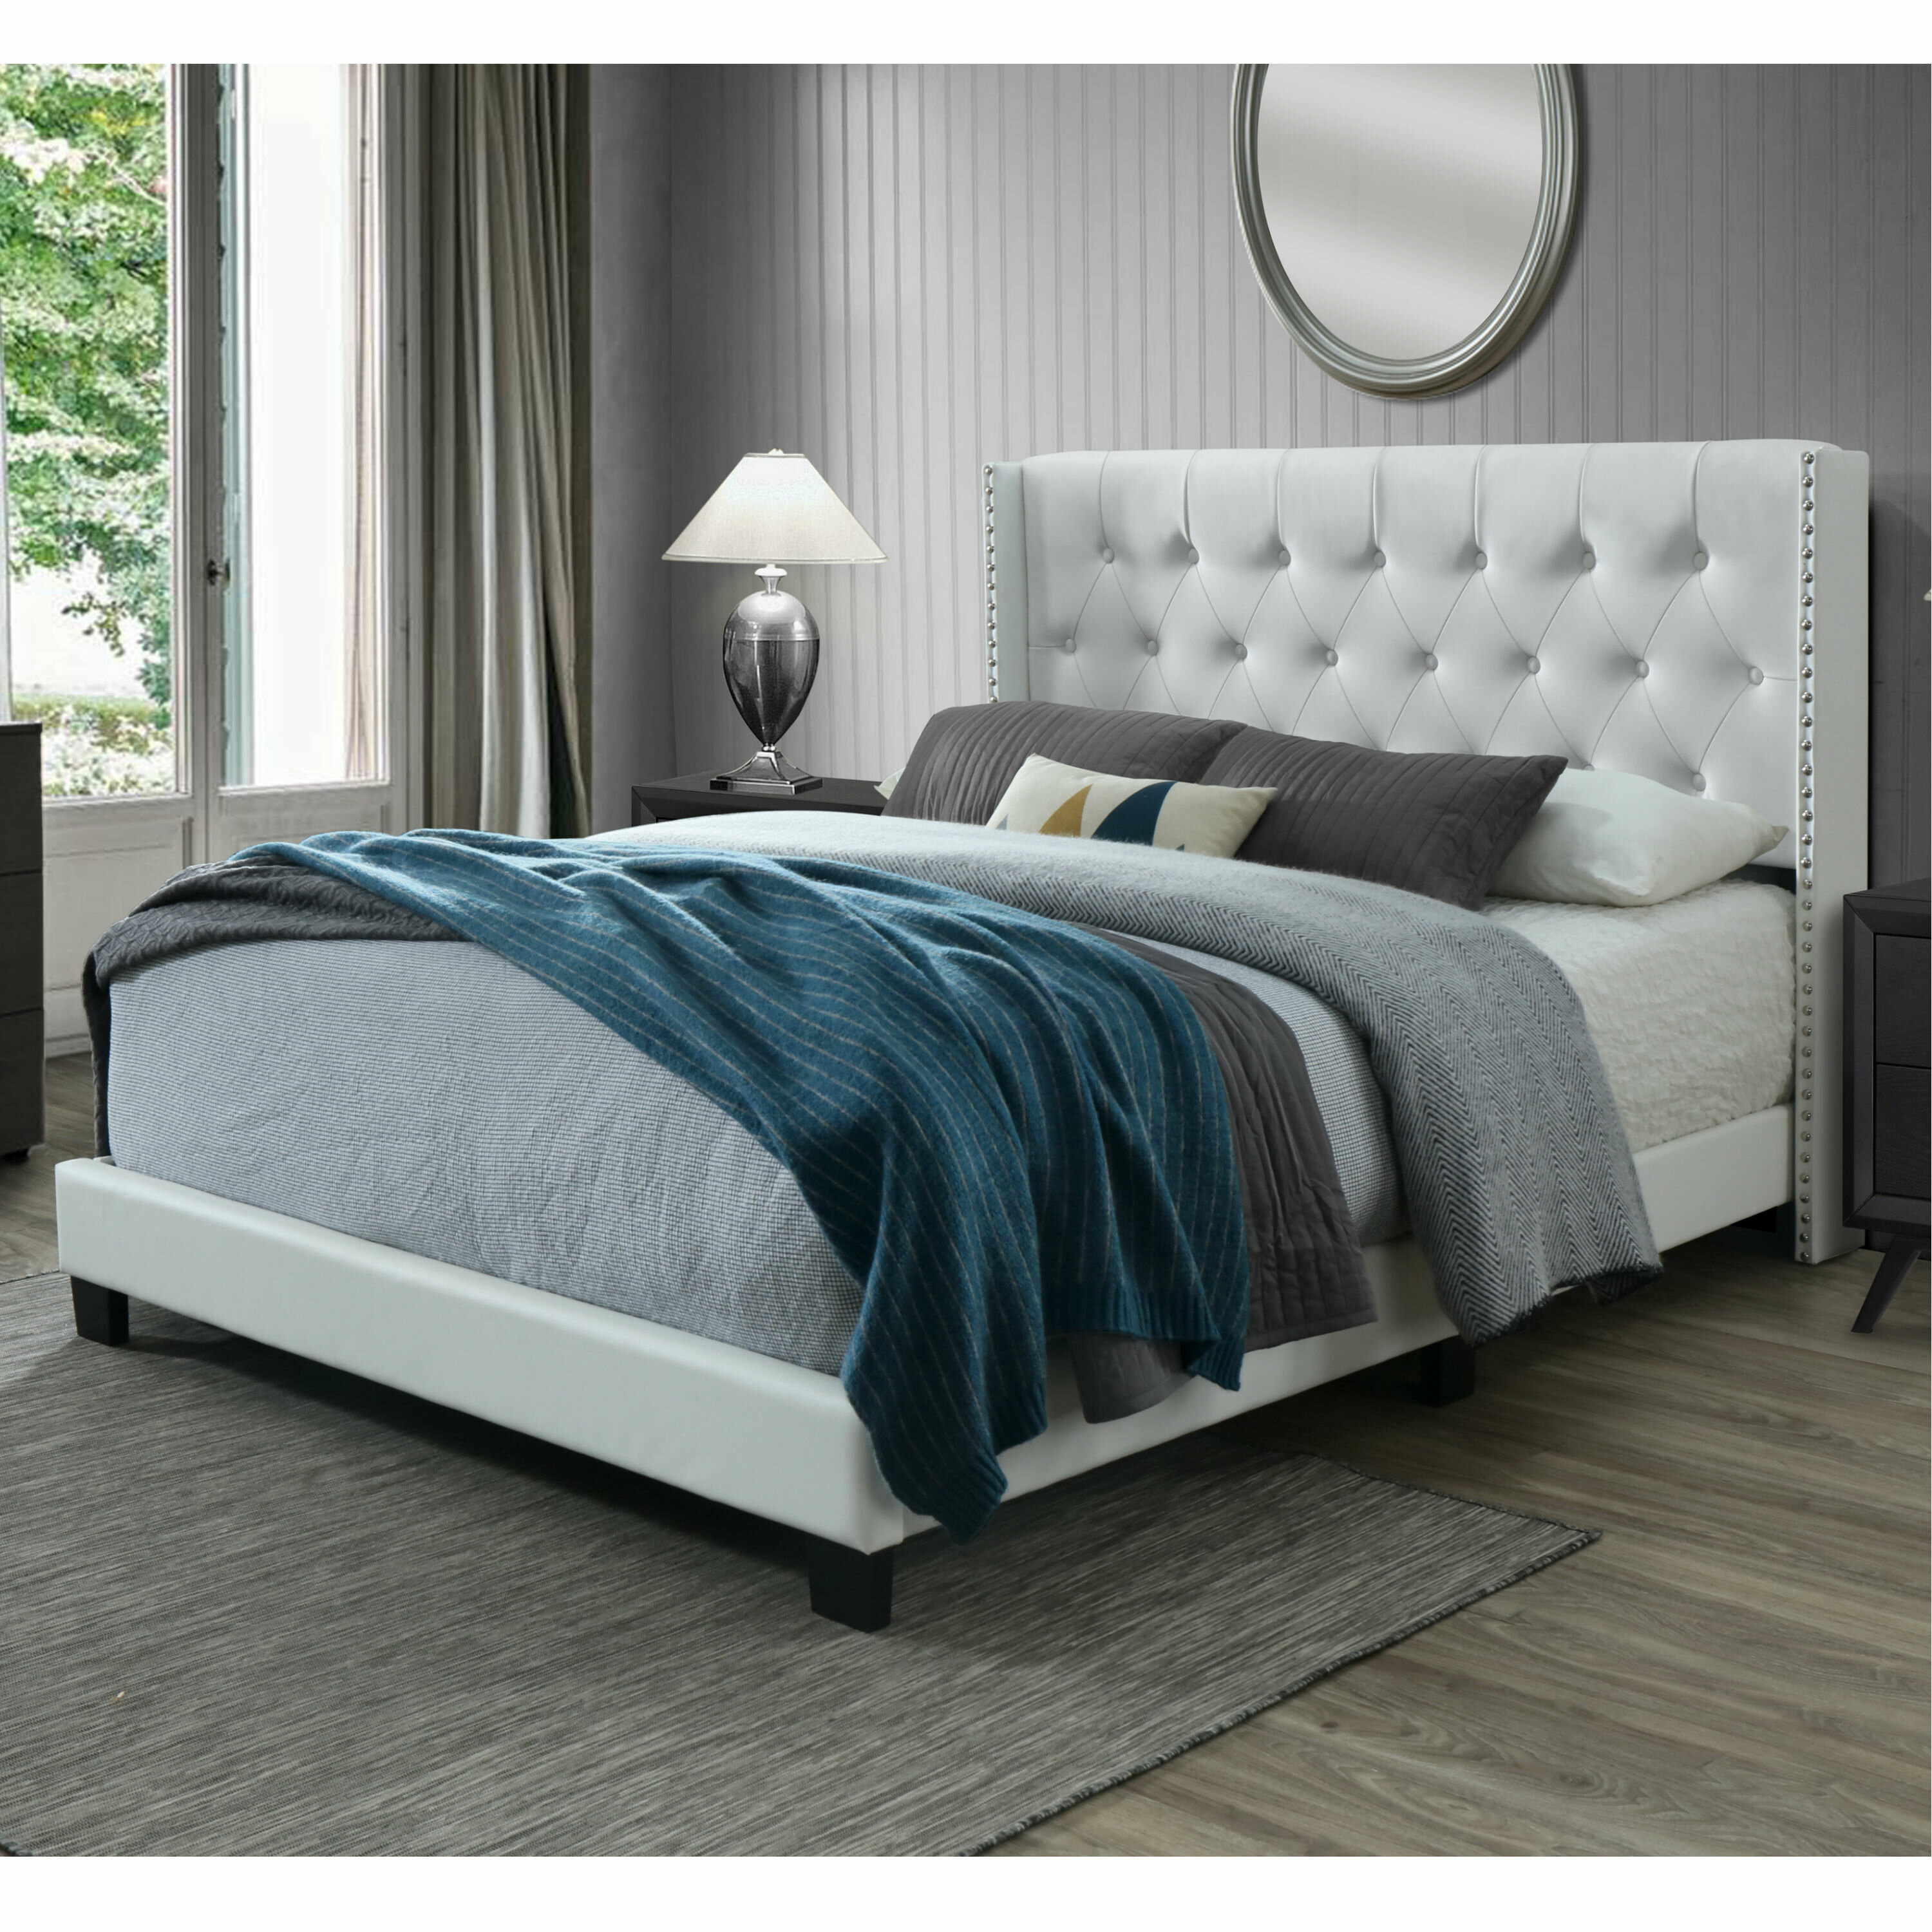 Willa Arlo Interiors Nadine Tufted Upholstered Low Profile Standard Bed Reviews Wayfair